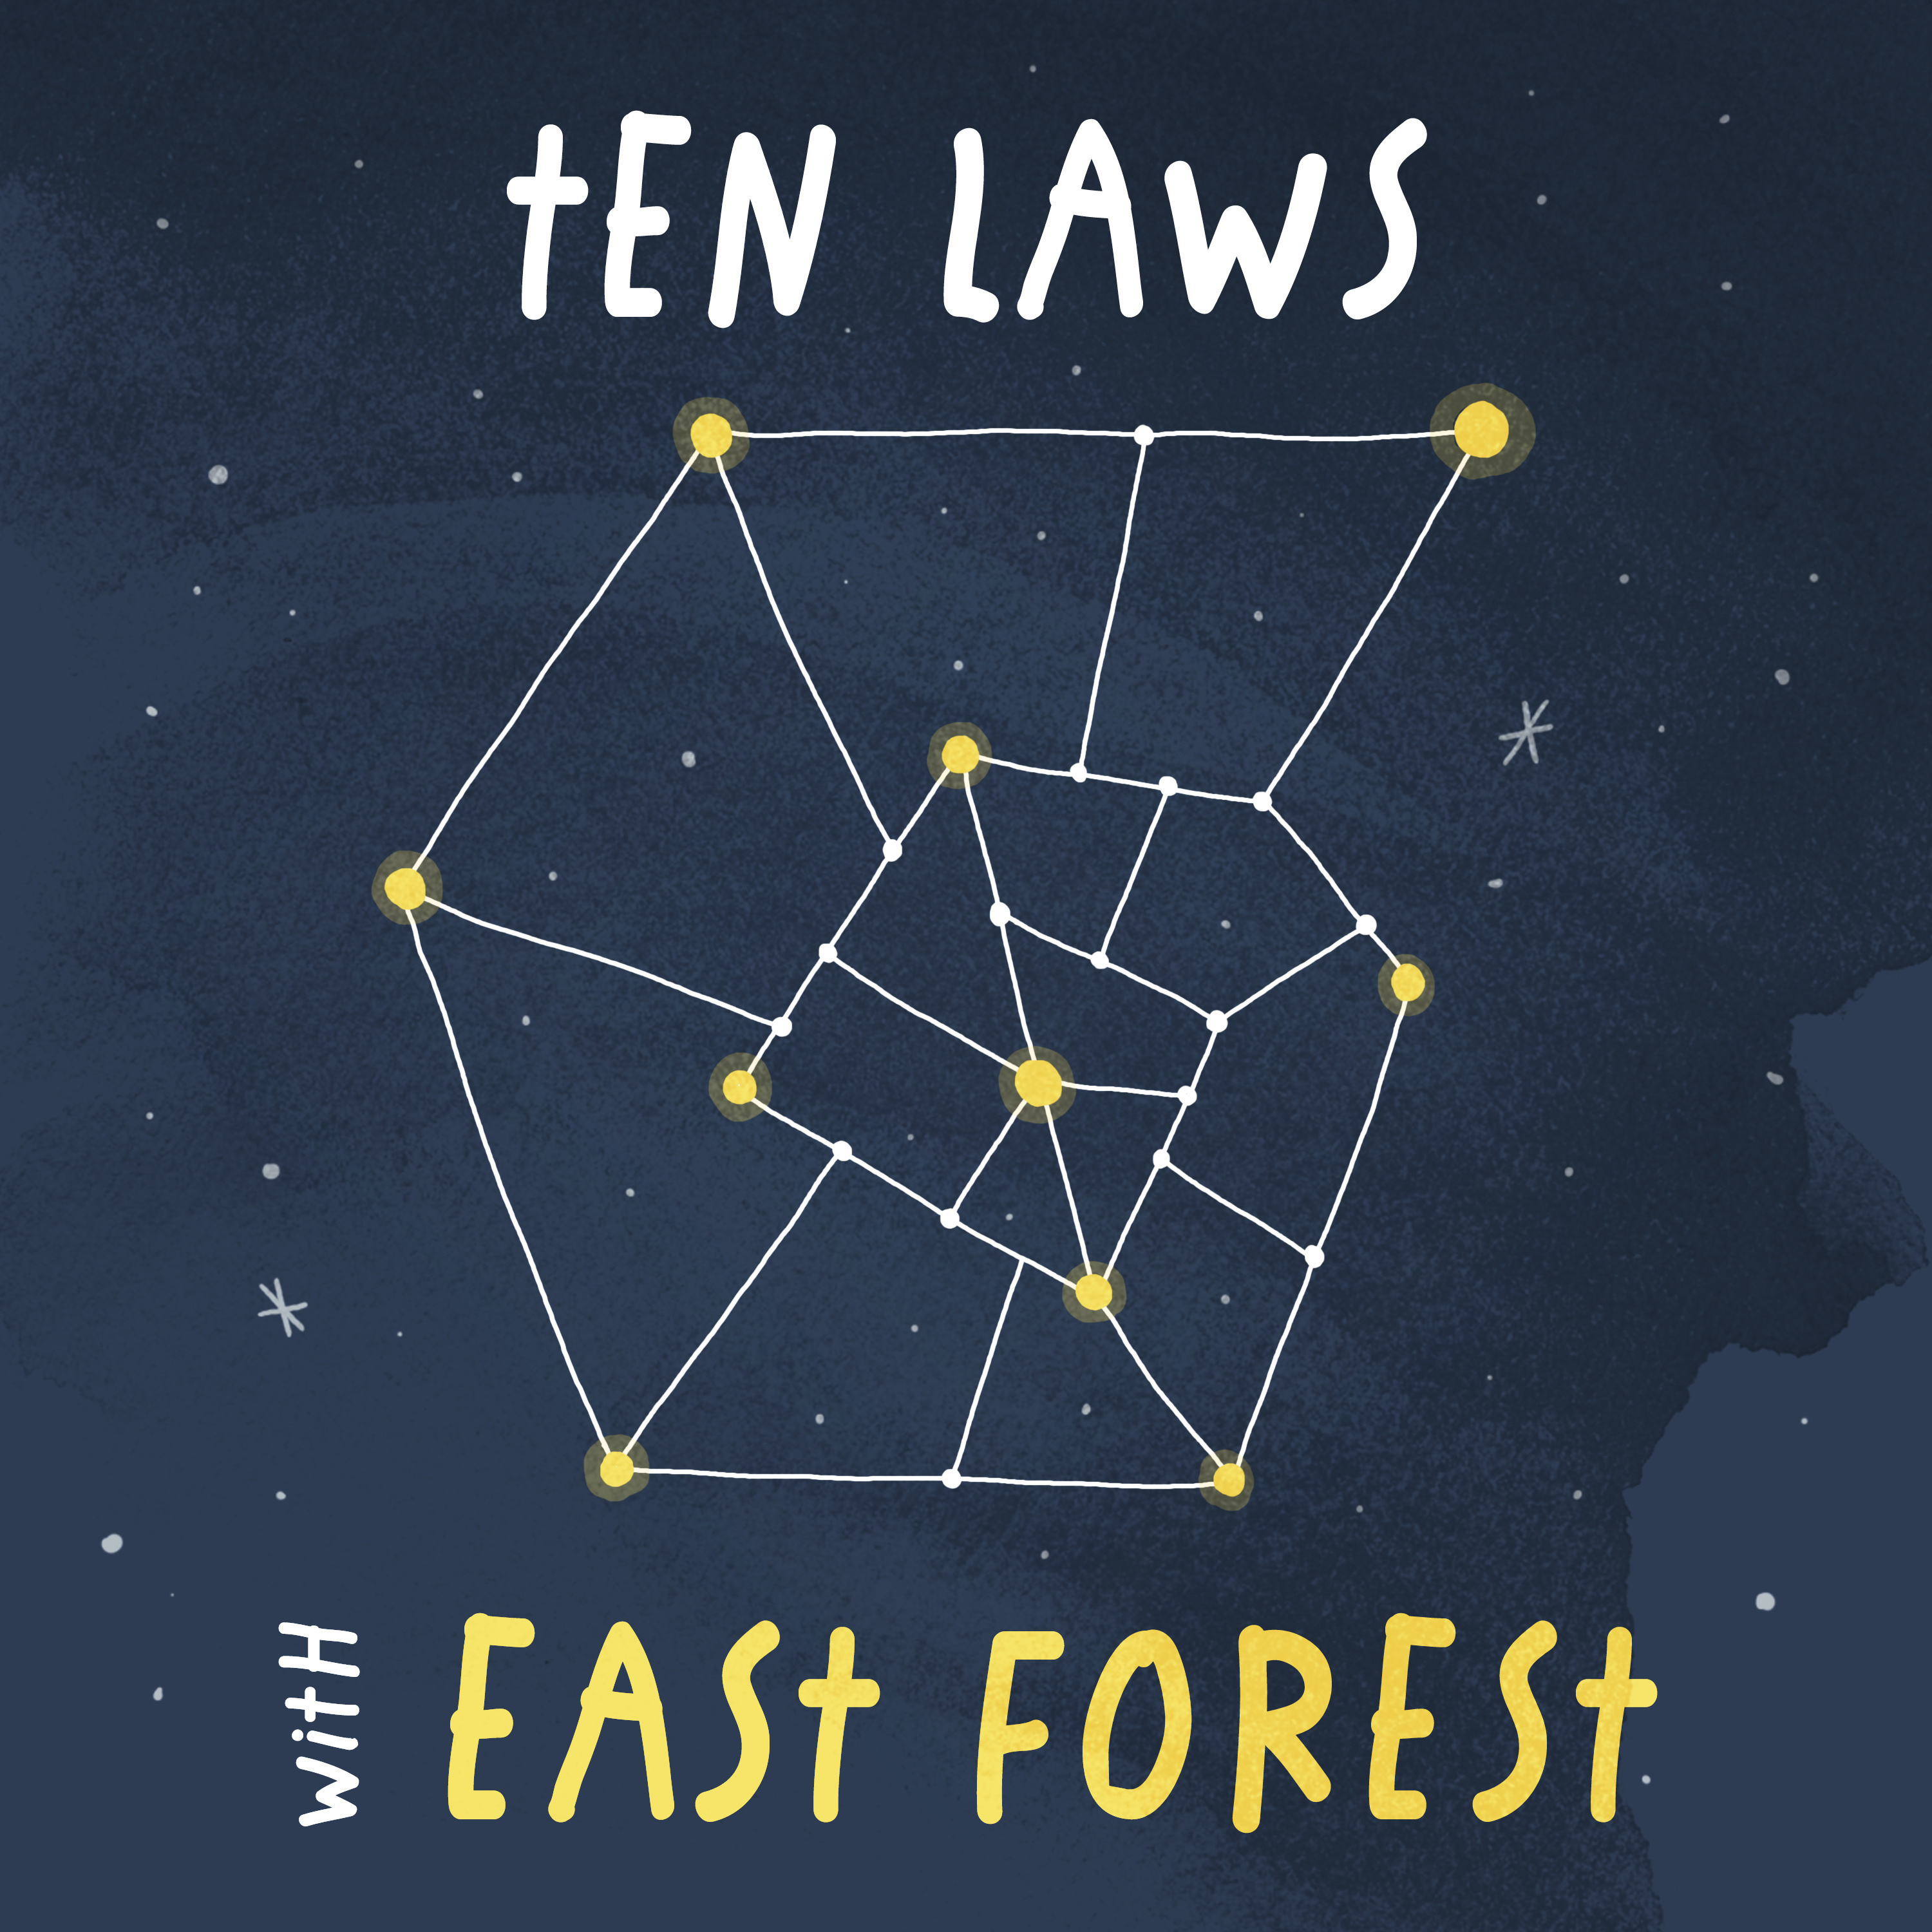 Best Episodes of Ten Laws with East Forest